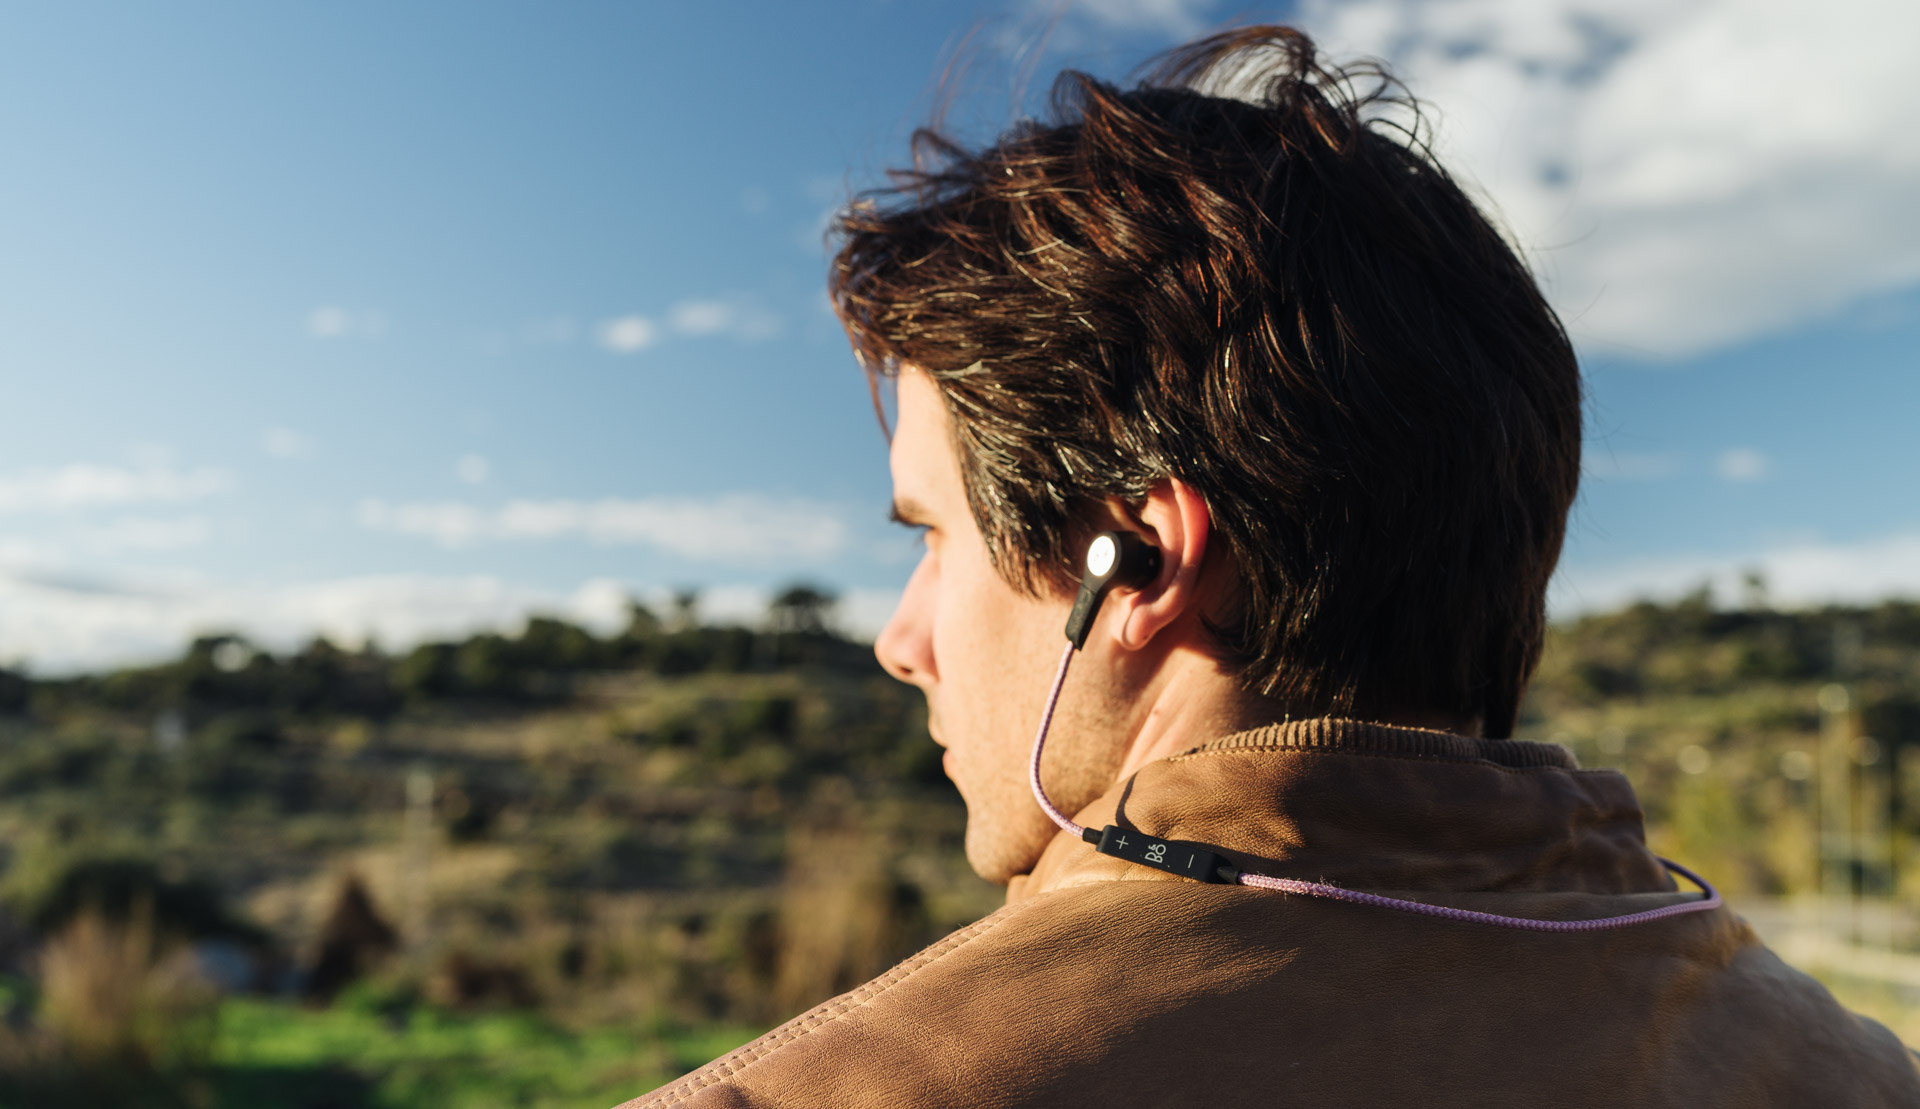 b74b1f41b43 A Review of the B&O PLAY Beoplay H5 Wireless Earphones — Tools and Toys